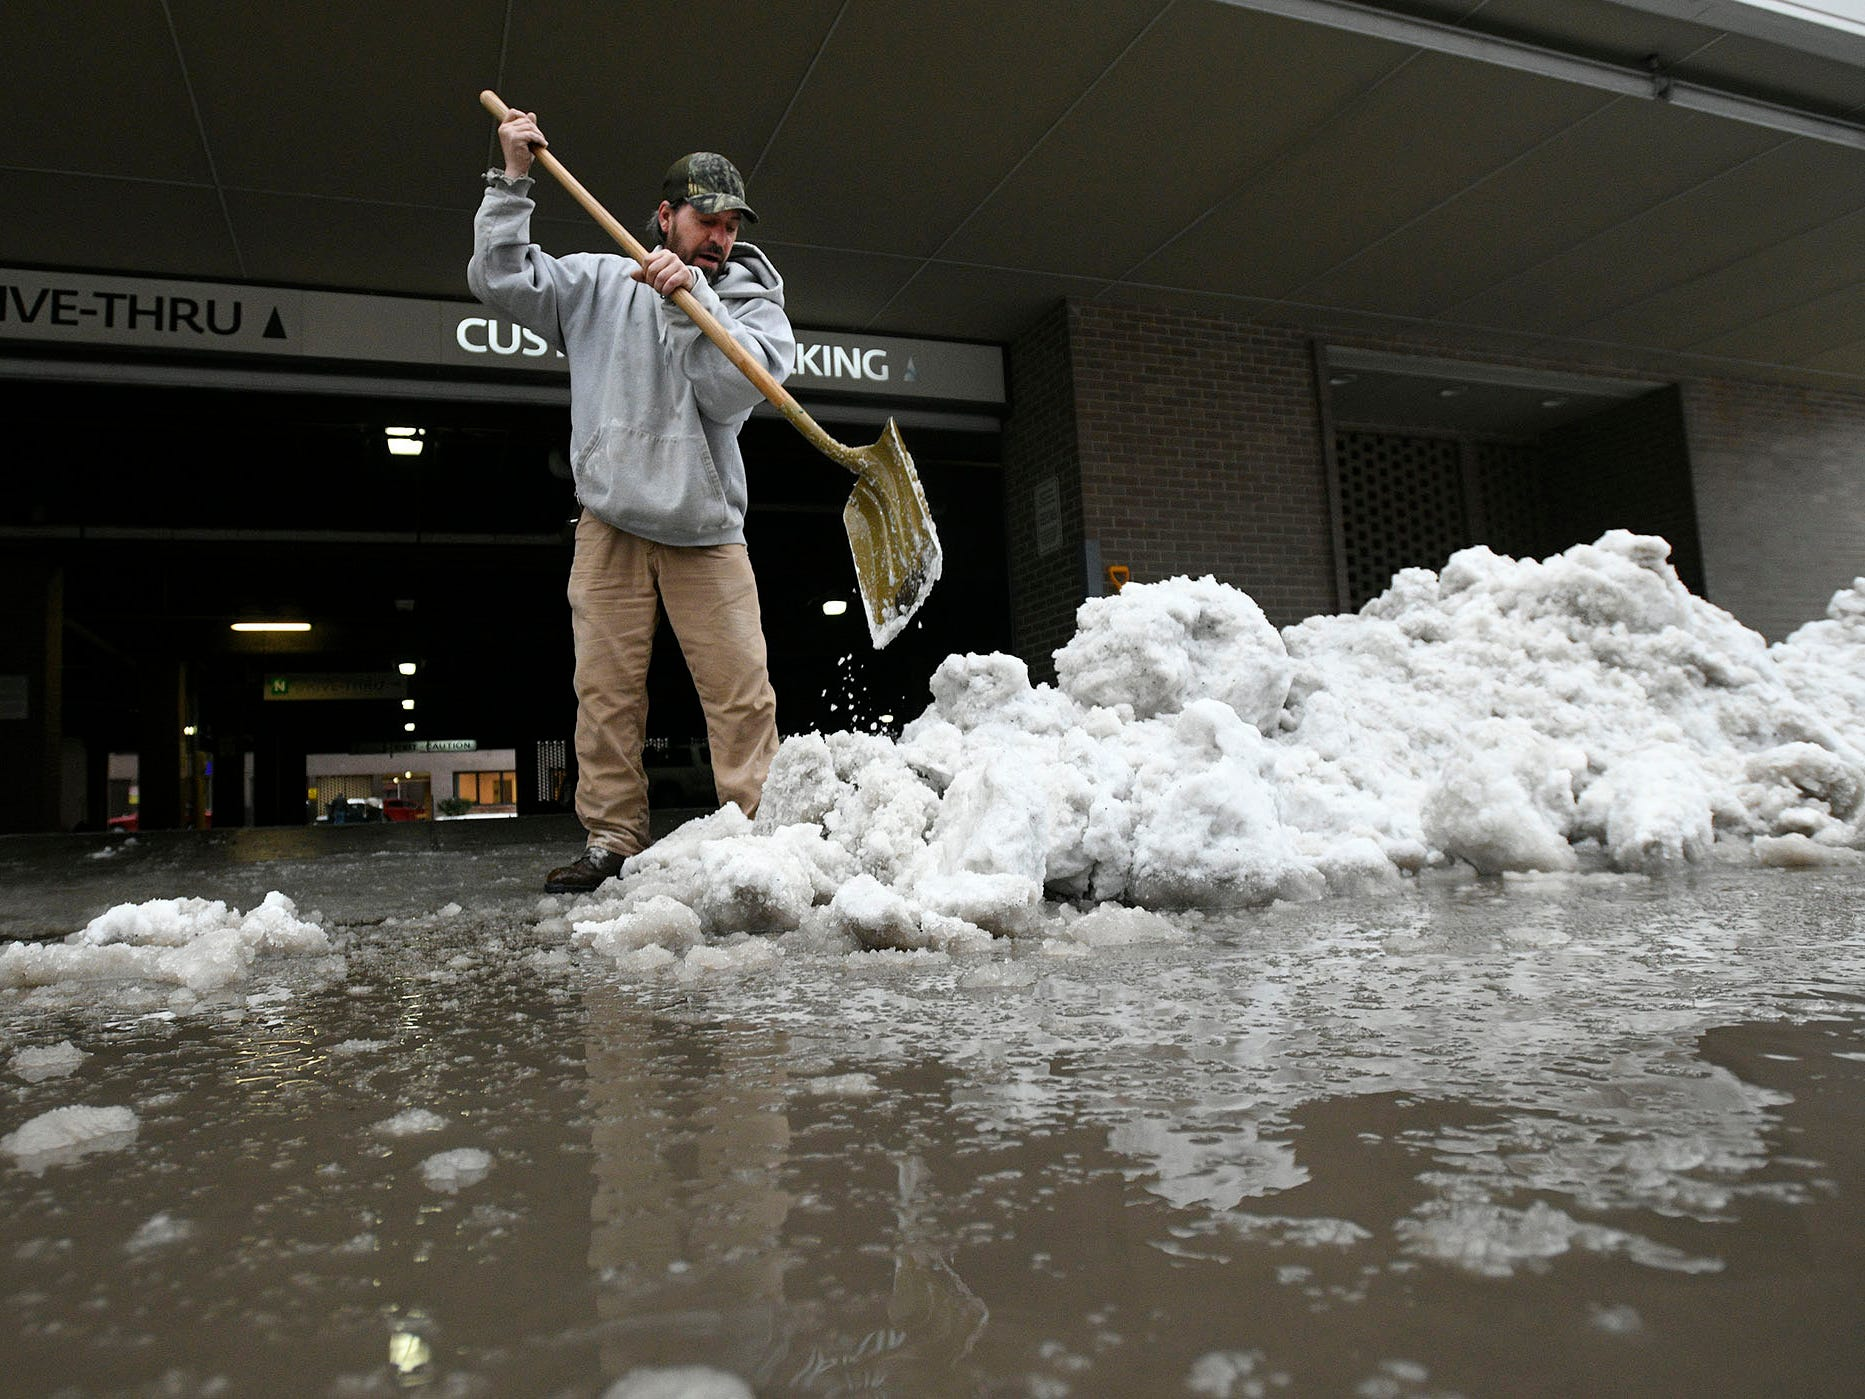 Chuck Ream clears the entrance way to a parking garage in Johnstown, Pa. Fed. 21, 2019.